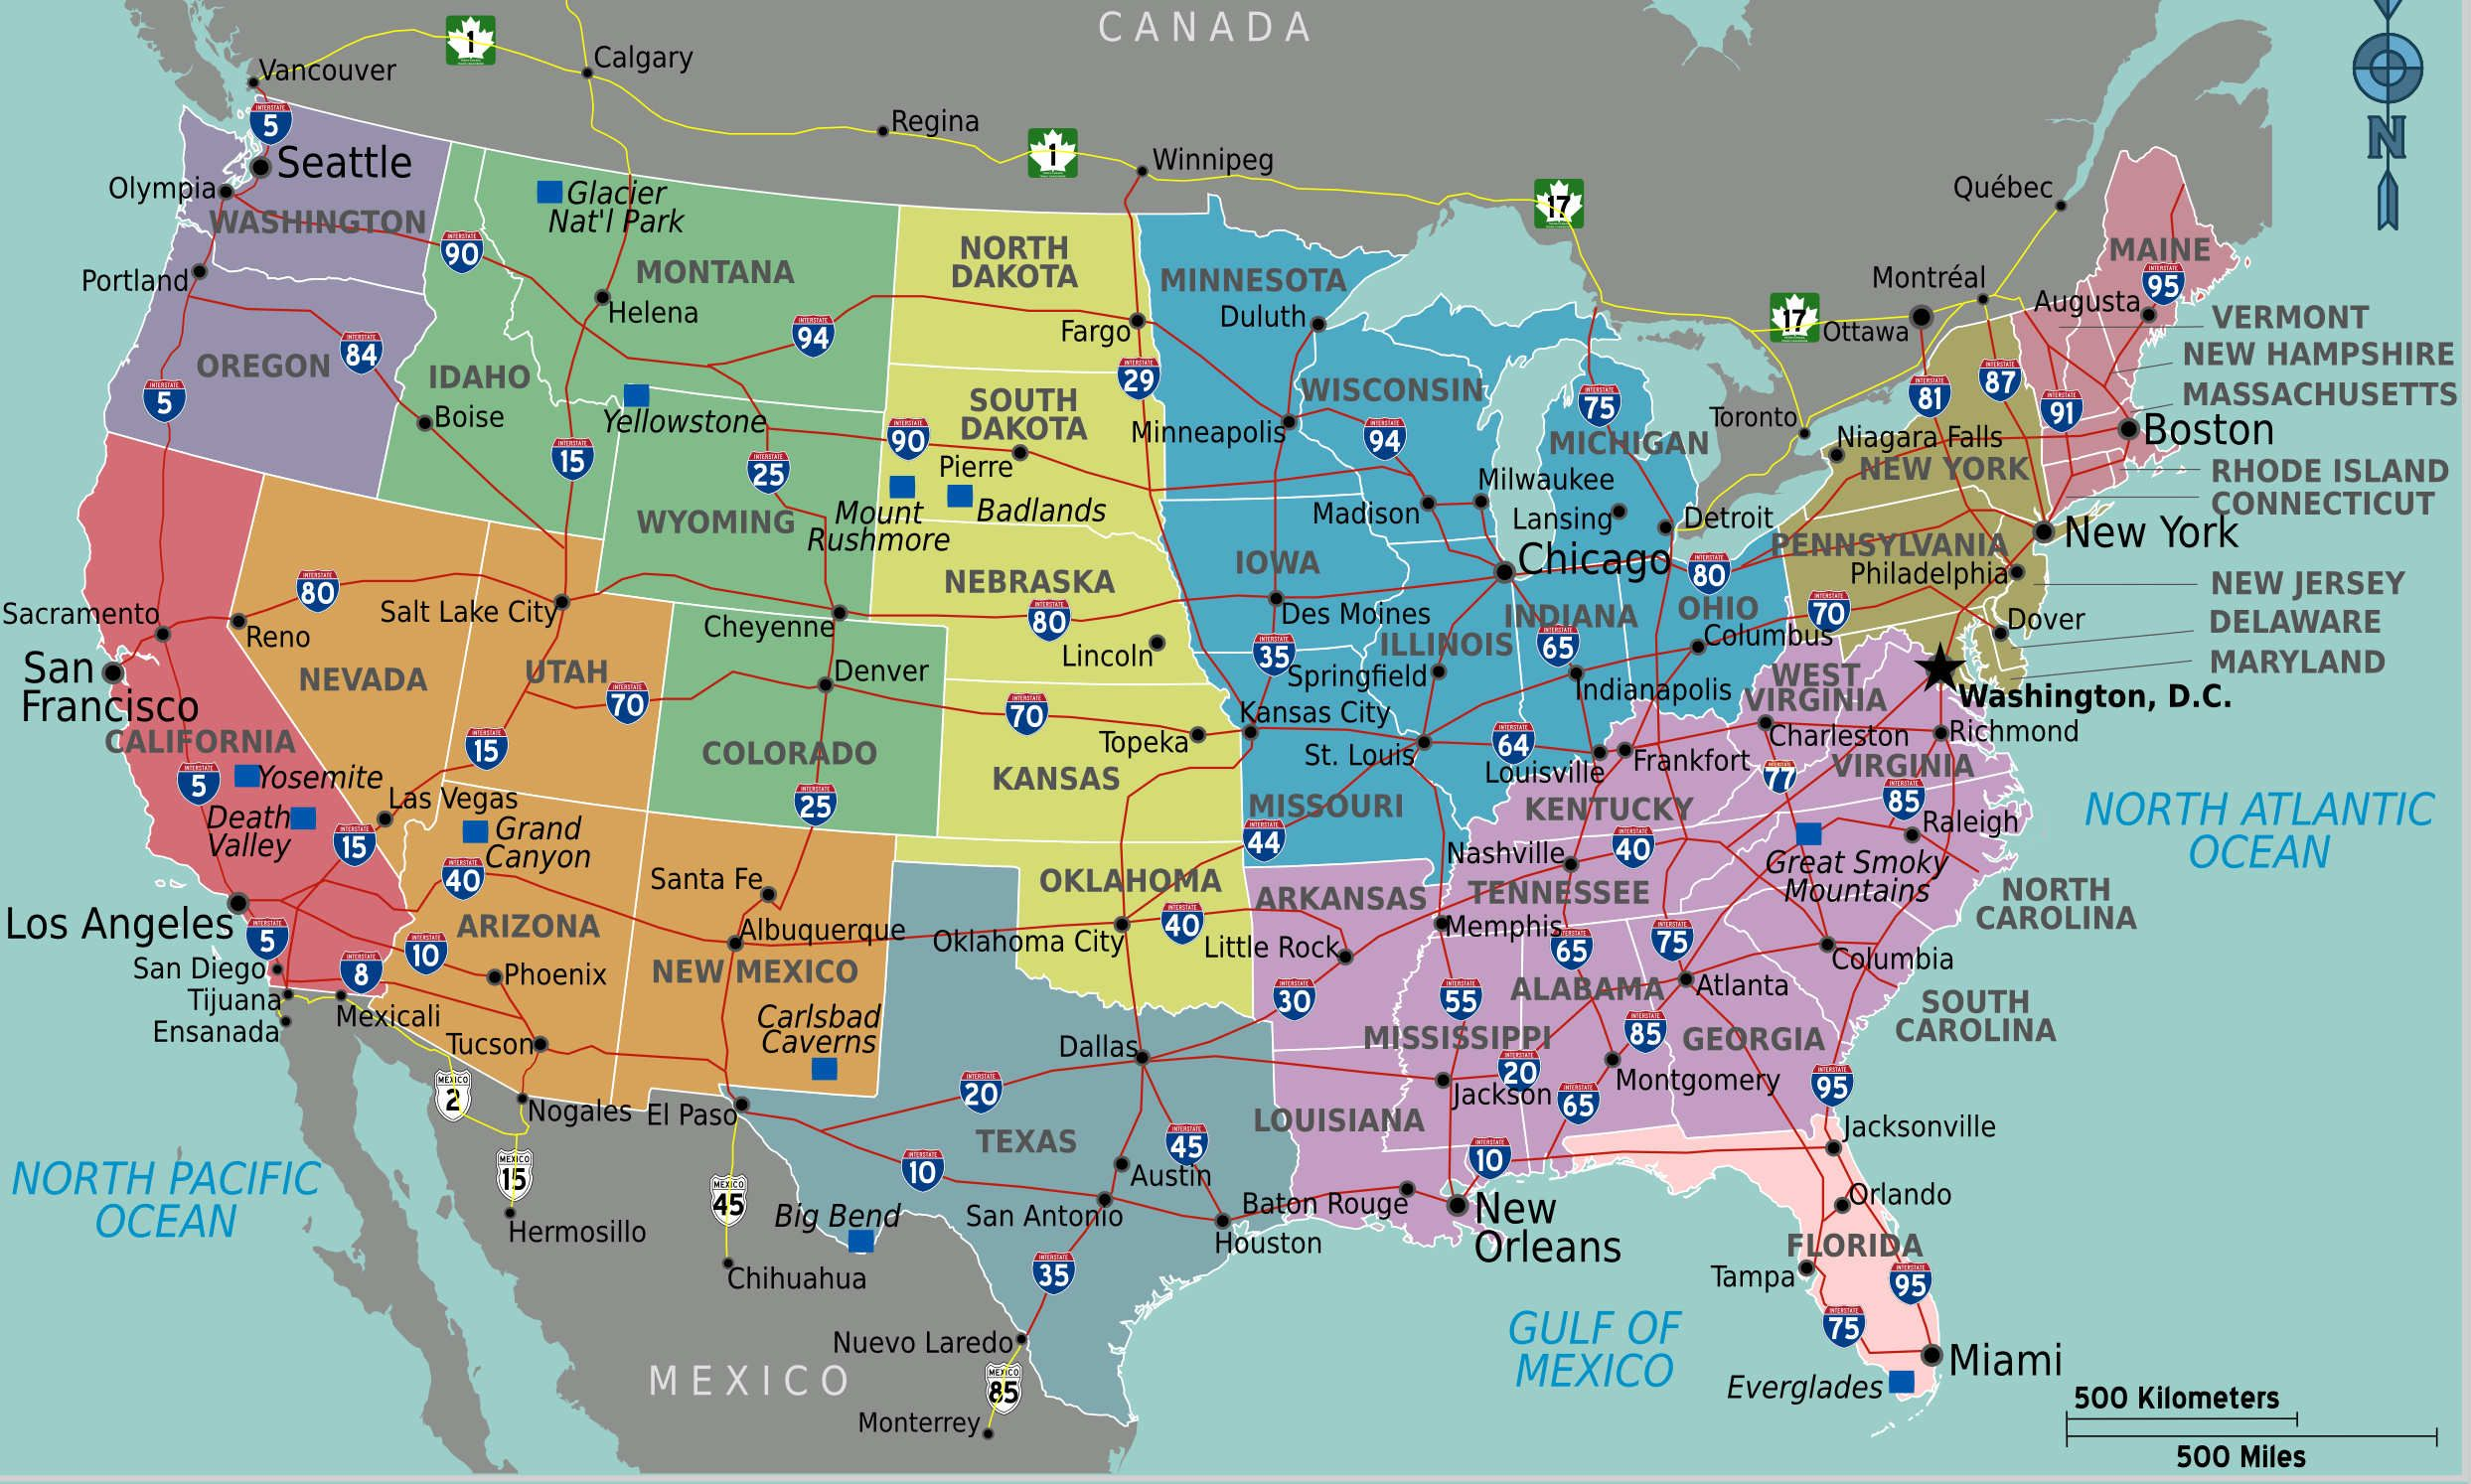 Pin by Zac on Map | Highway map, Us map with cities, United states map